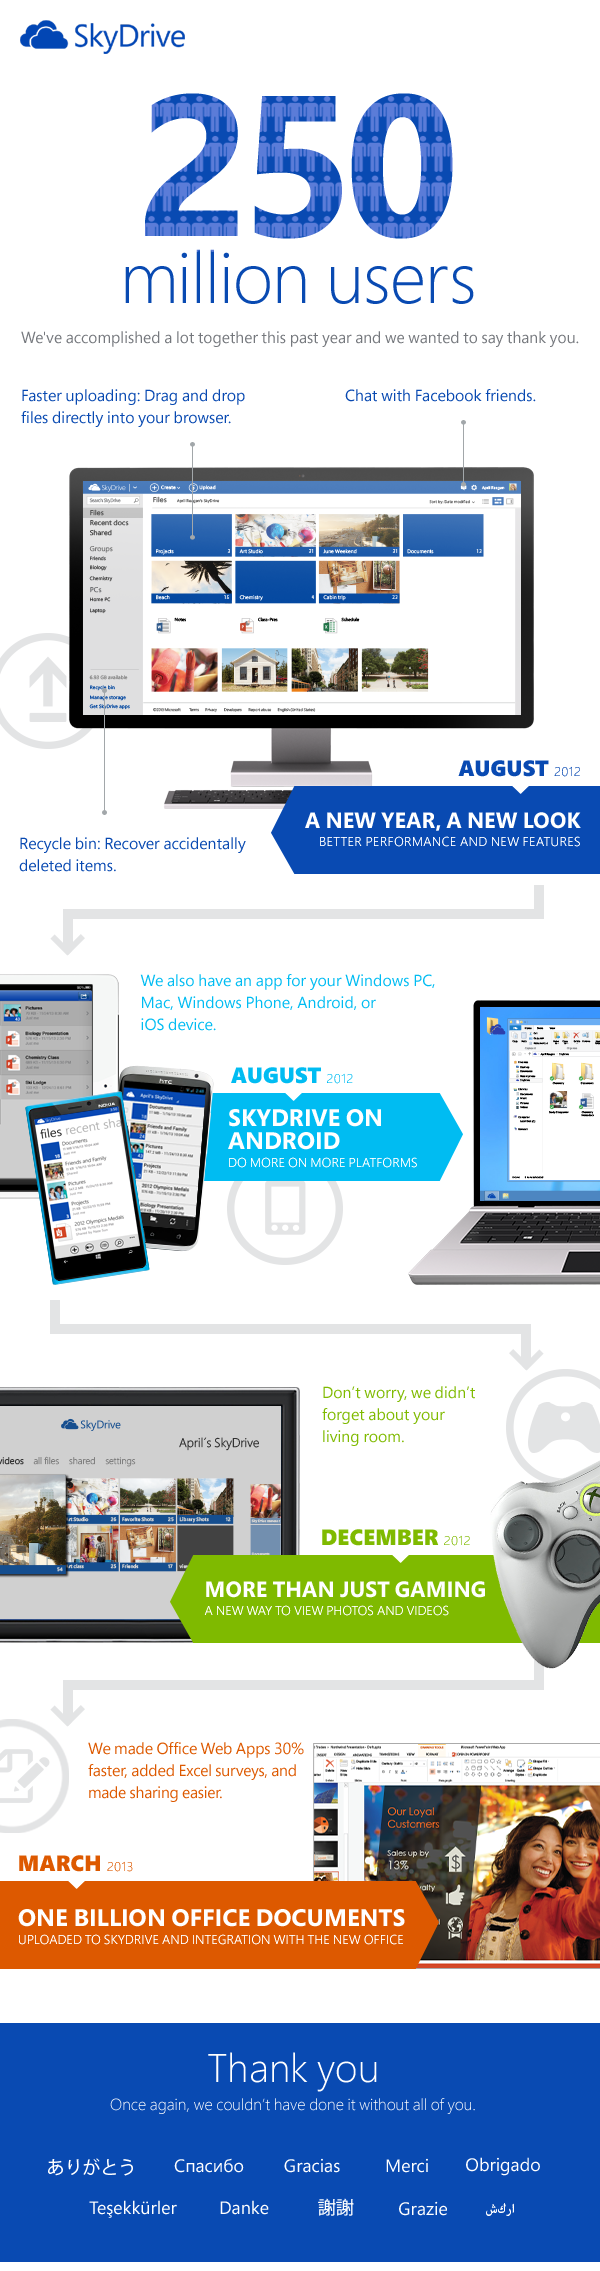 skydrive-anniversary-infographie